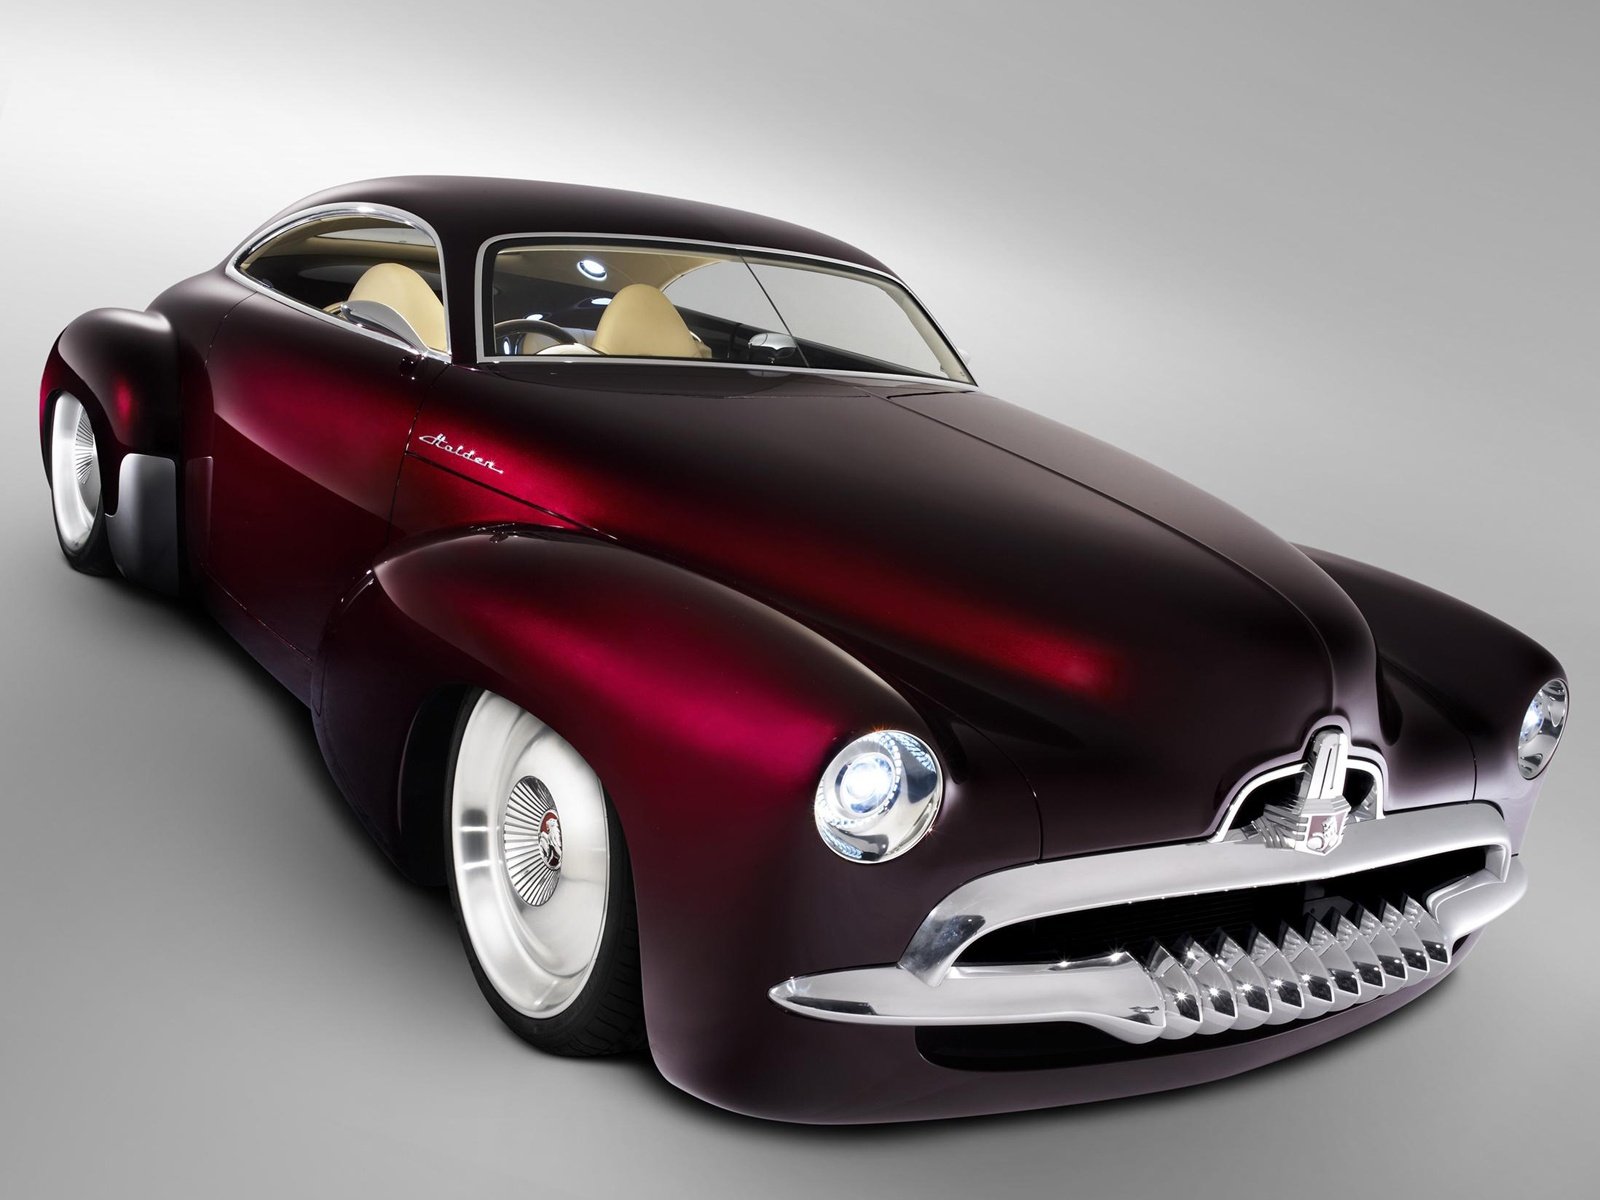 page size 1600x1200 desktop wallpaper of holden classic car 1600x1200